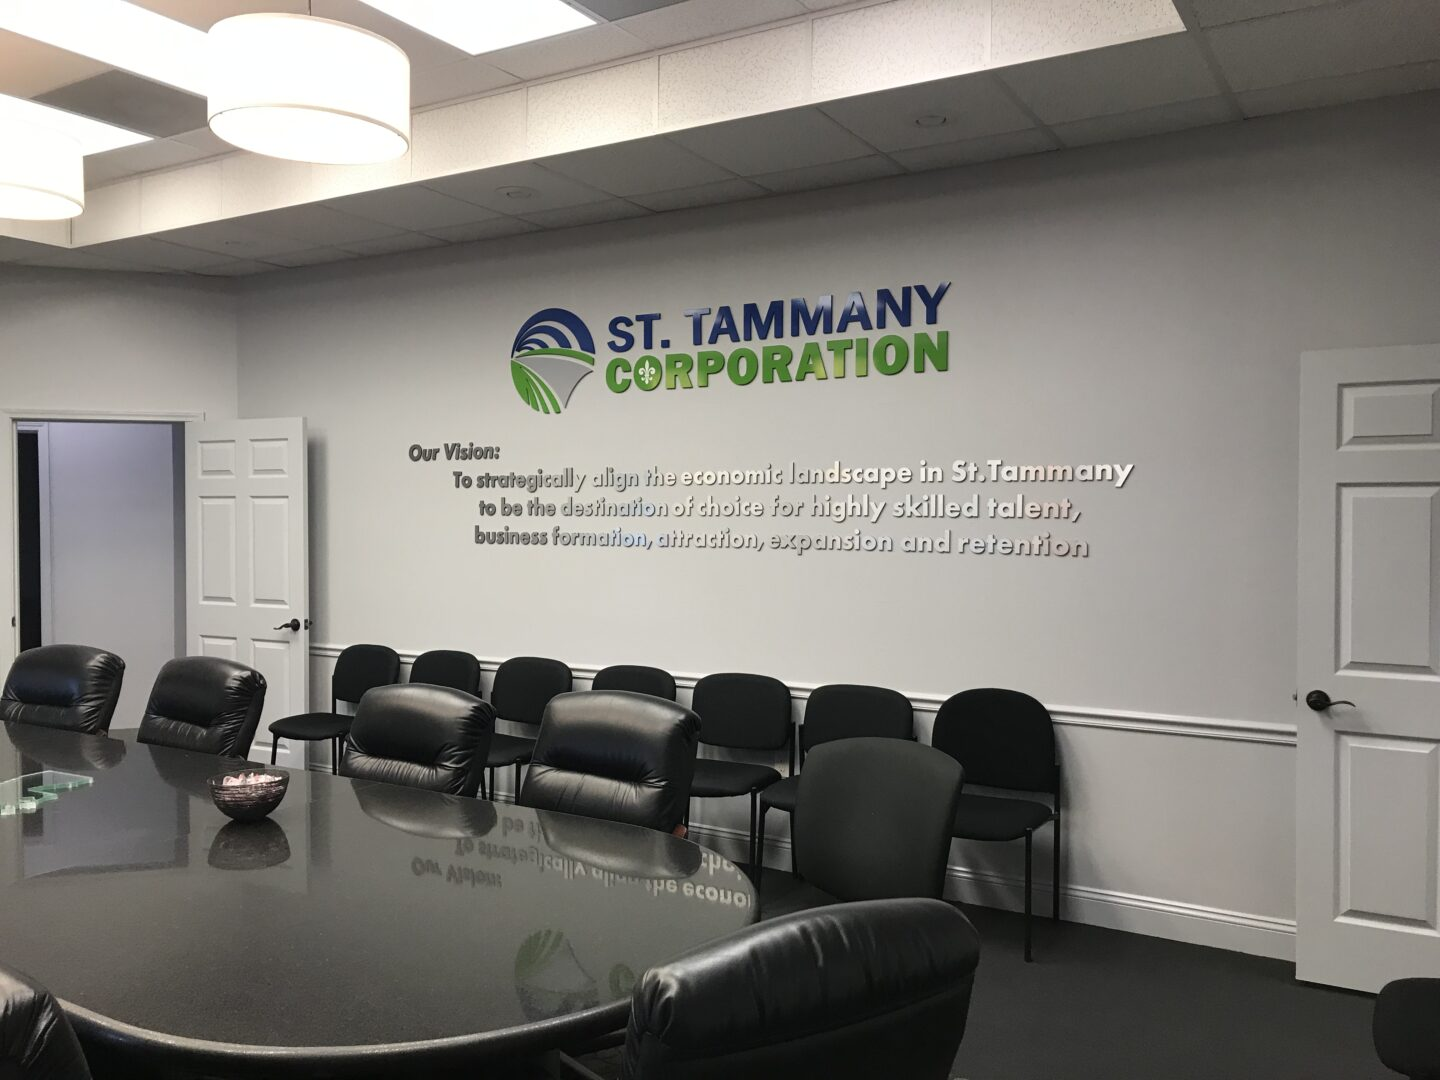 Interior Wall Signage with Vision Statement St. Tammany Corporation Architectural Sign SEI HQ